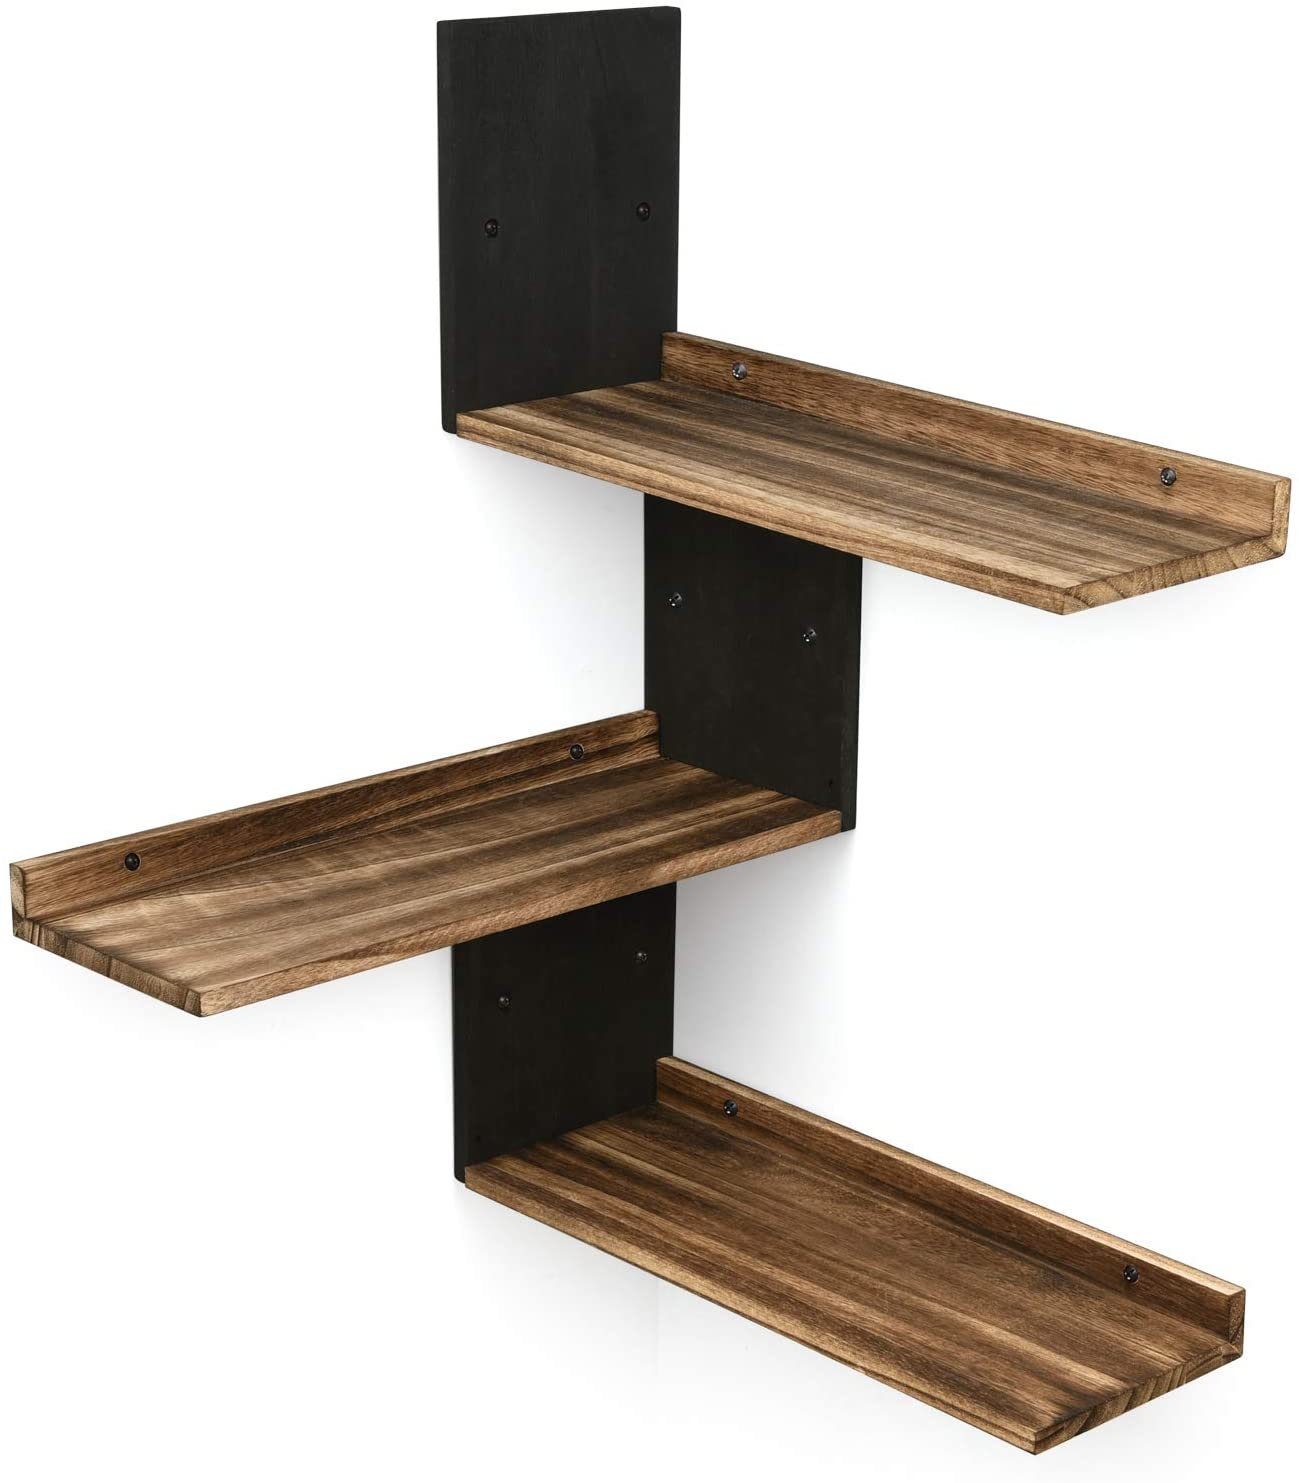 Miratino Corner Wall Shelves Rustic Wood Corner Floating Shelves for Bedroom Living Room Bathroom Kitchen Set of 3 Assorted Color Black & Brown: Kitchen & Dining